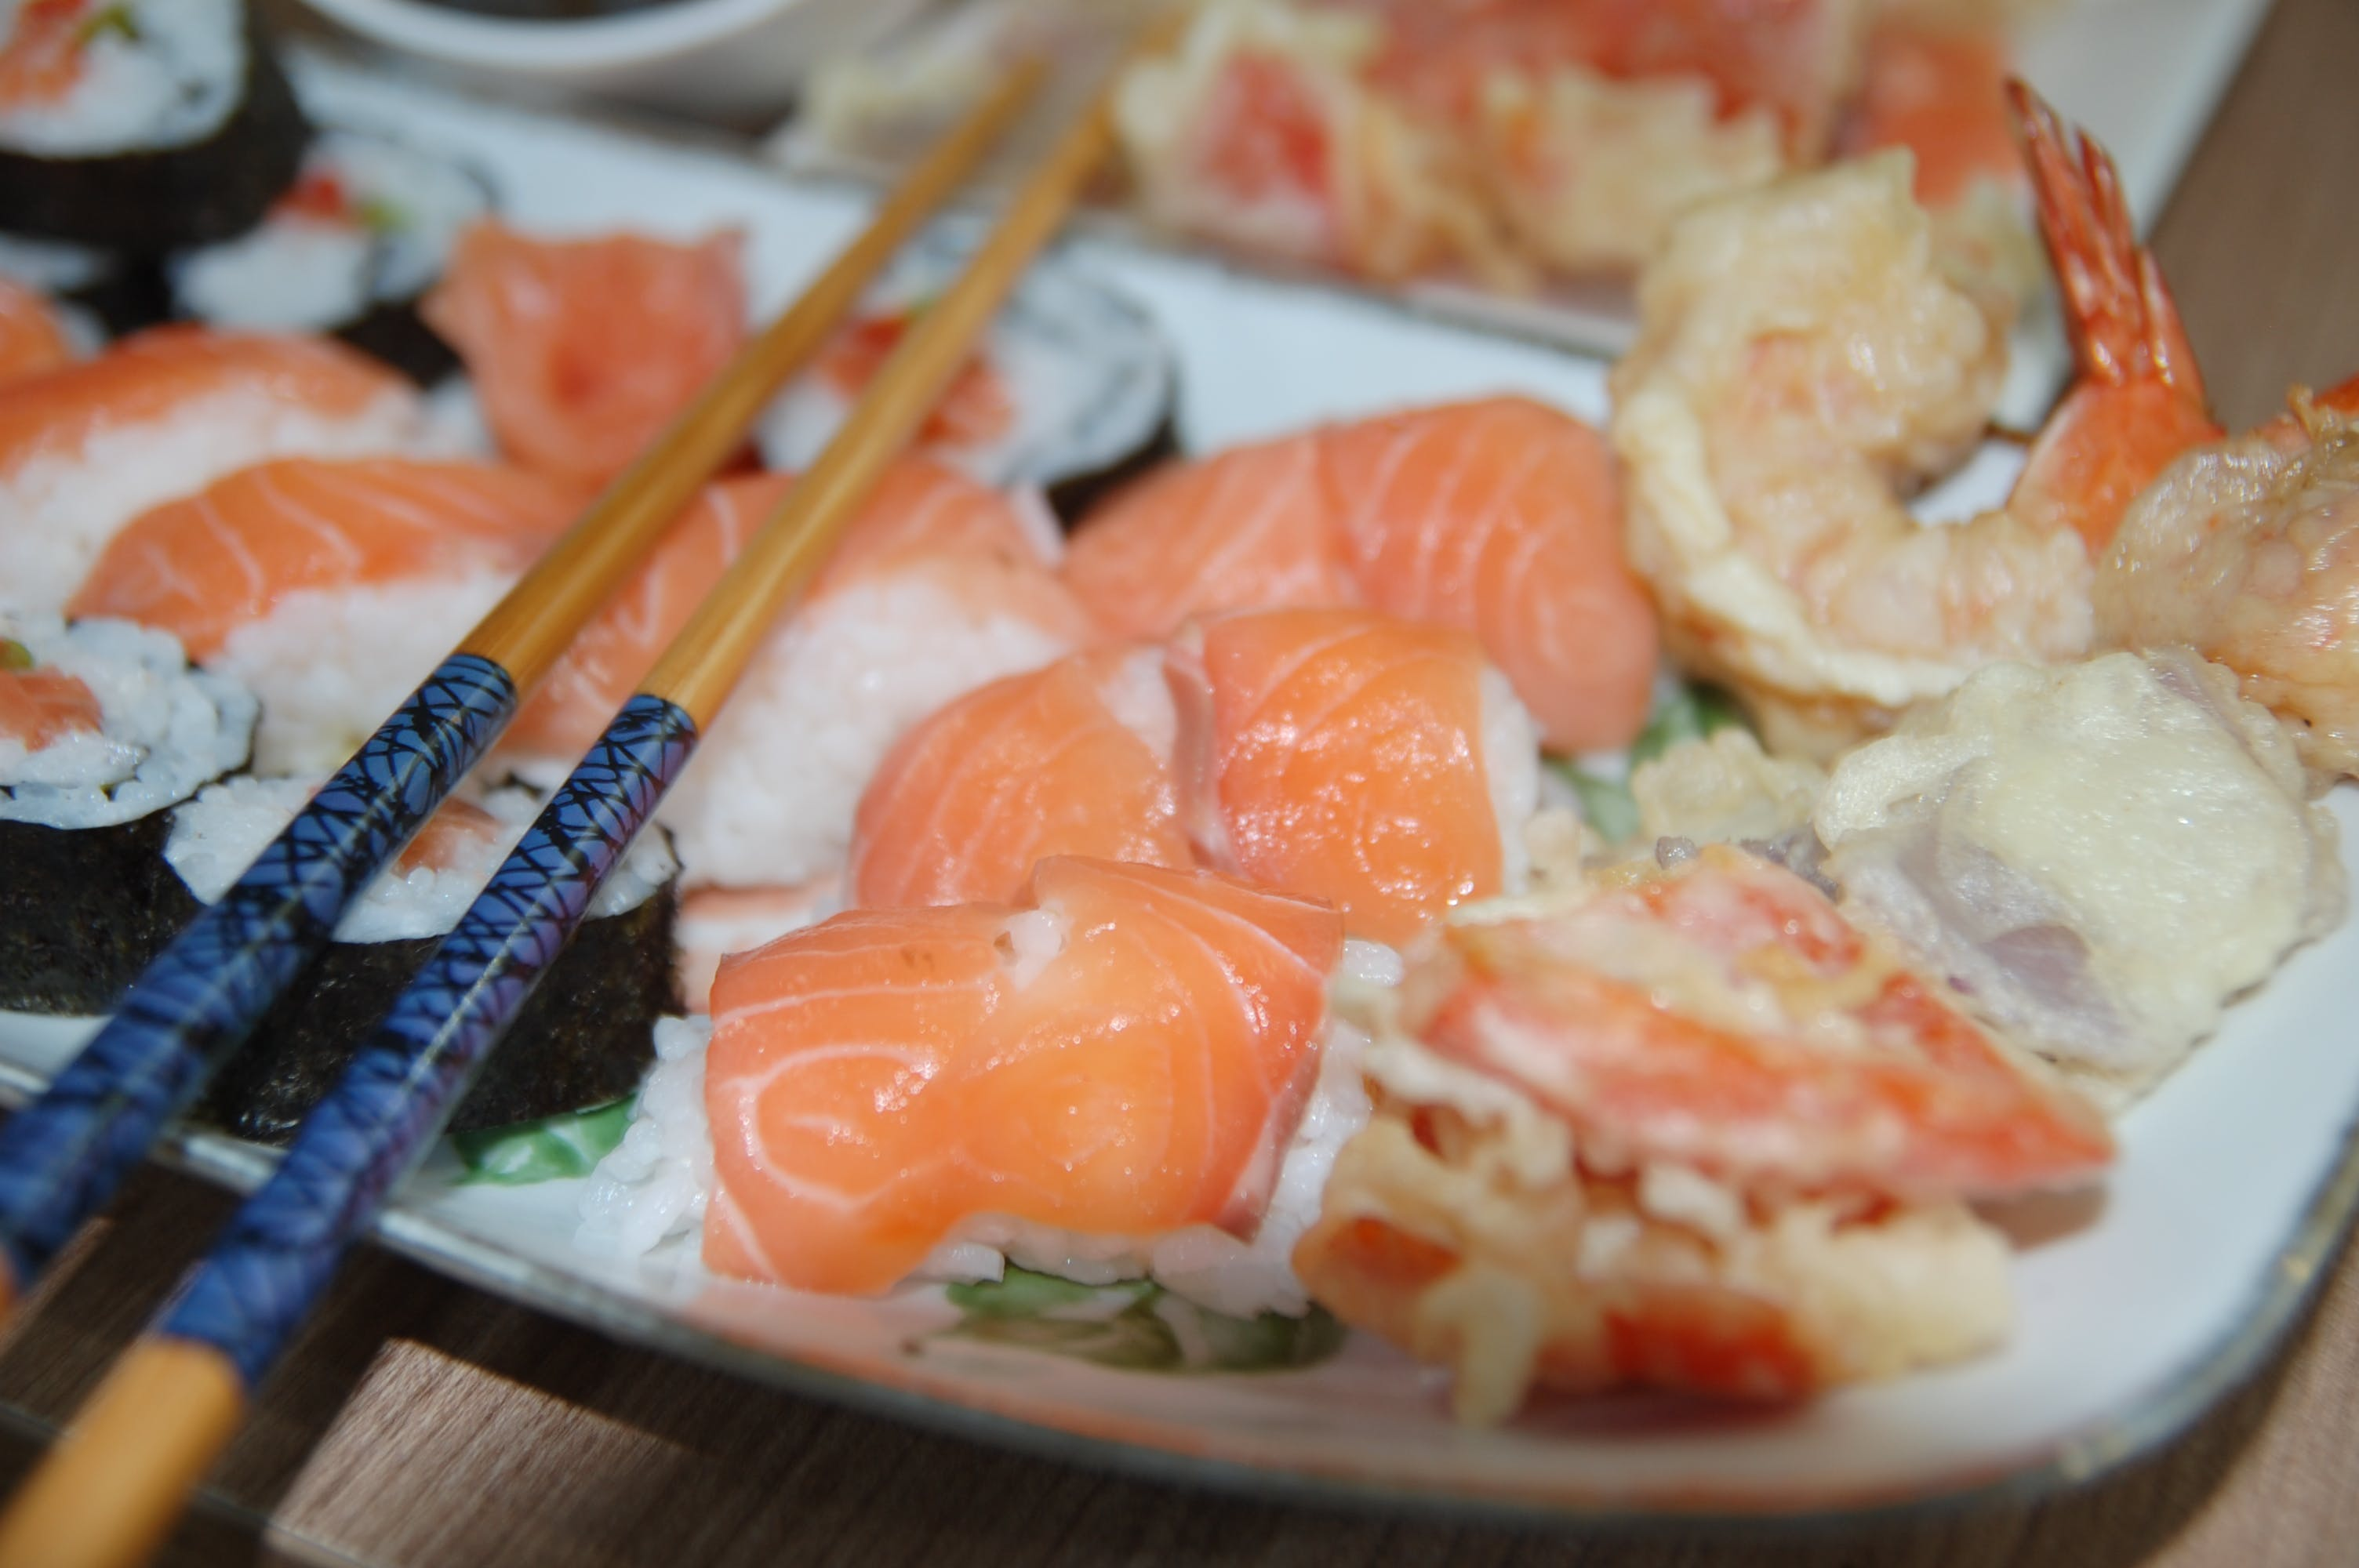 Chopsticks on Top of Variety of Sushi on Plate